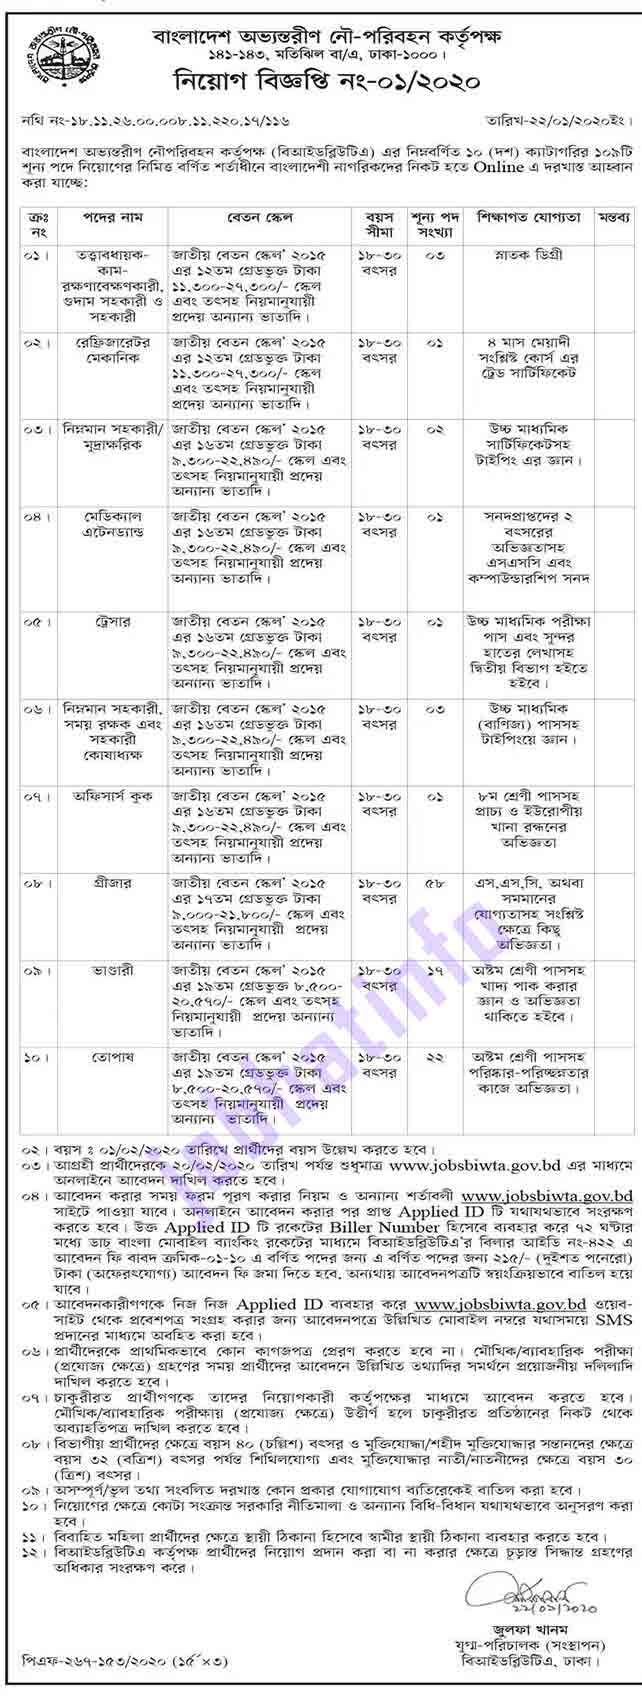 Bangladesh Inland Water Transport Authority Job Circular-2020 2